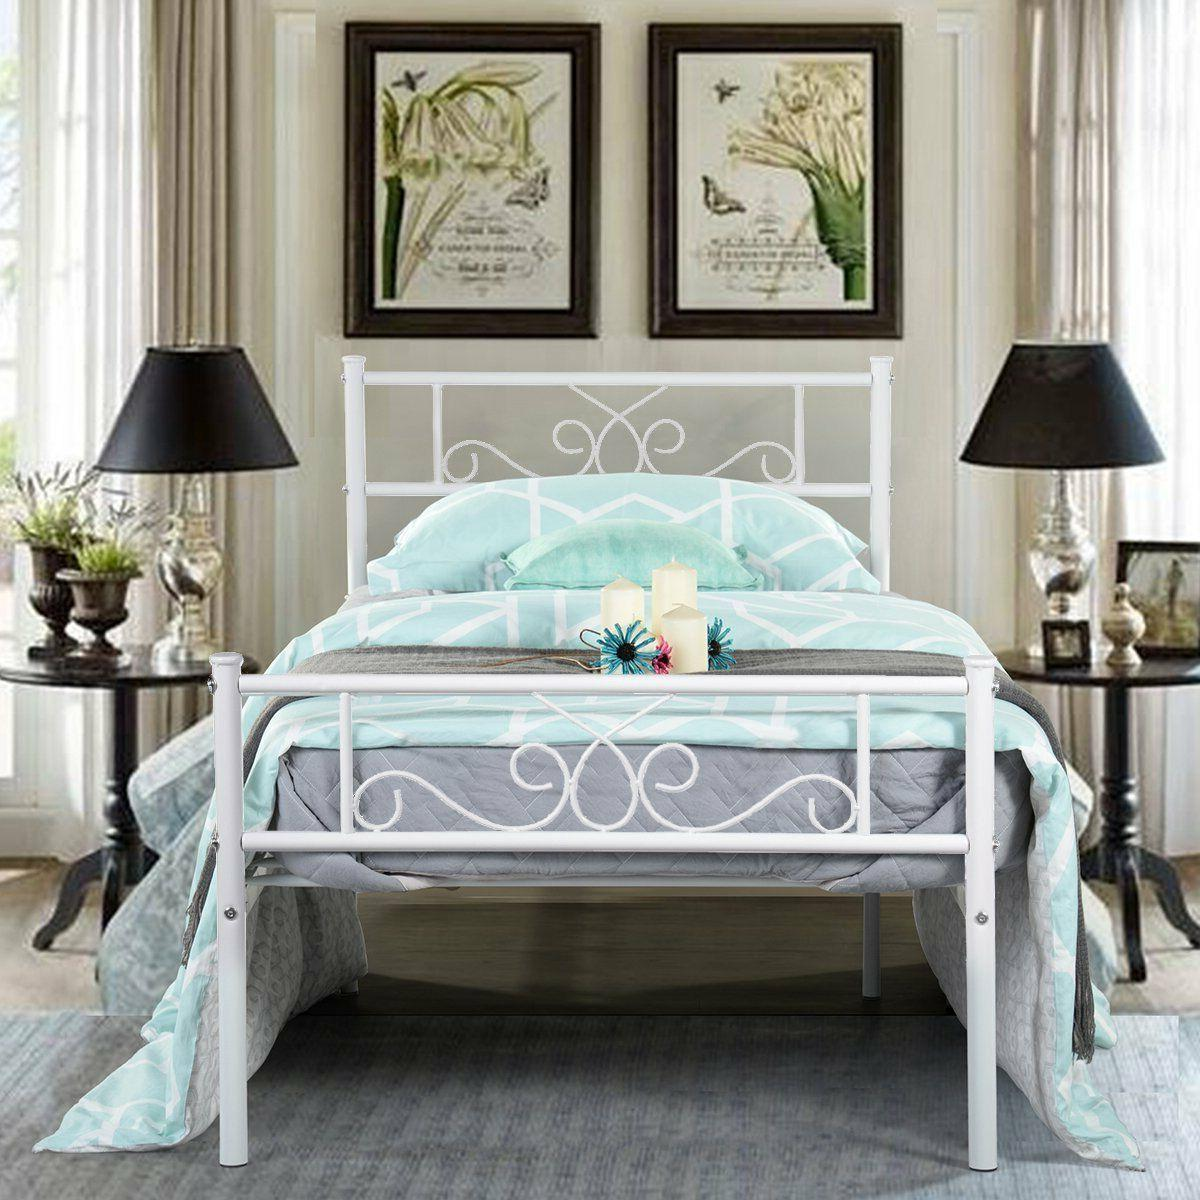 Twin Size Metal Bed Frame Mattress Foundation with Headboard